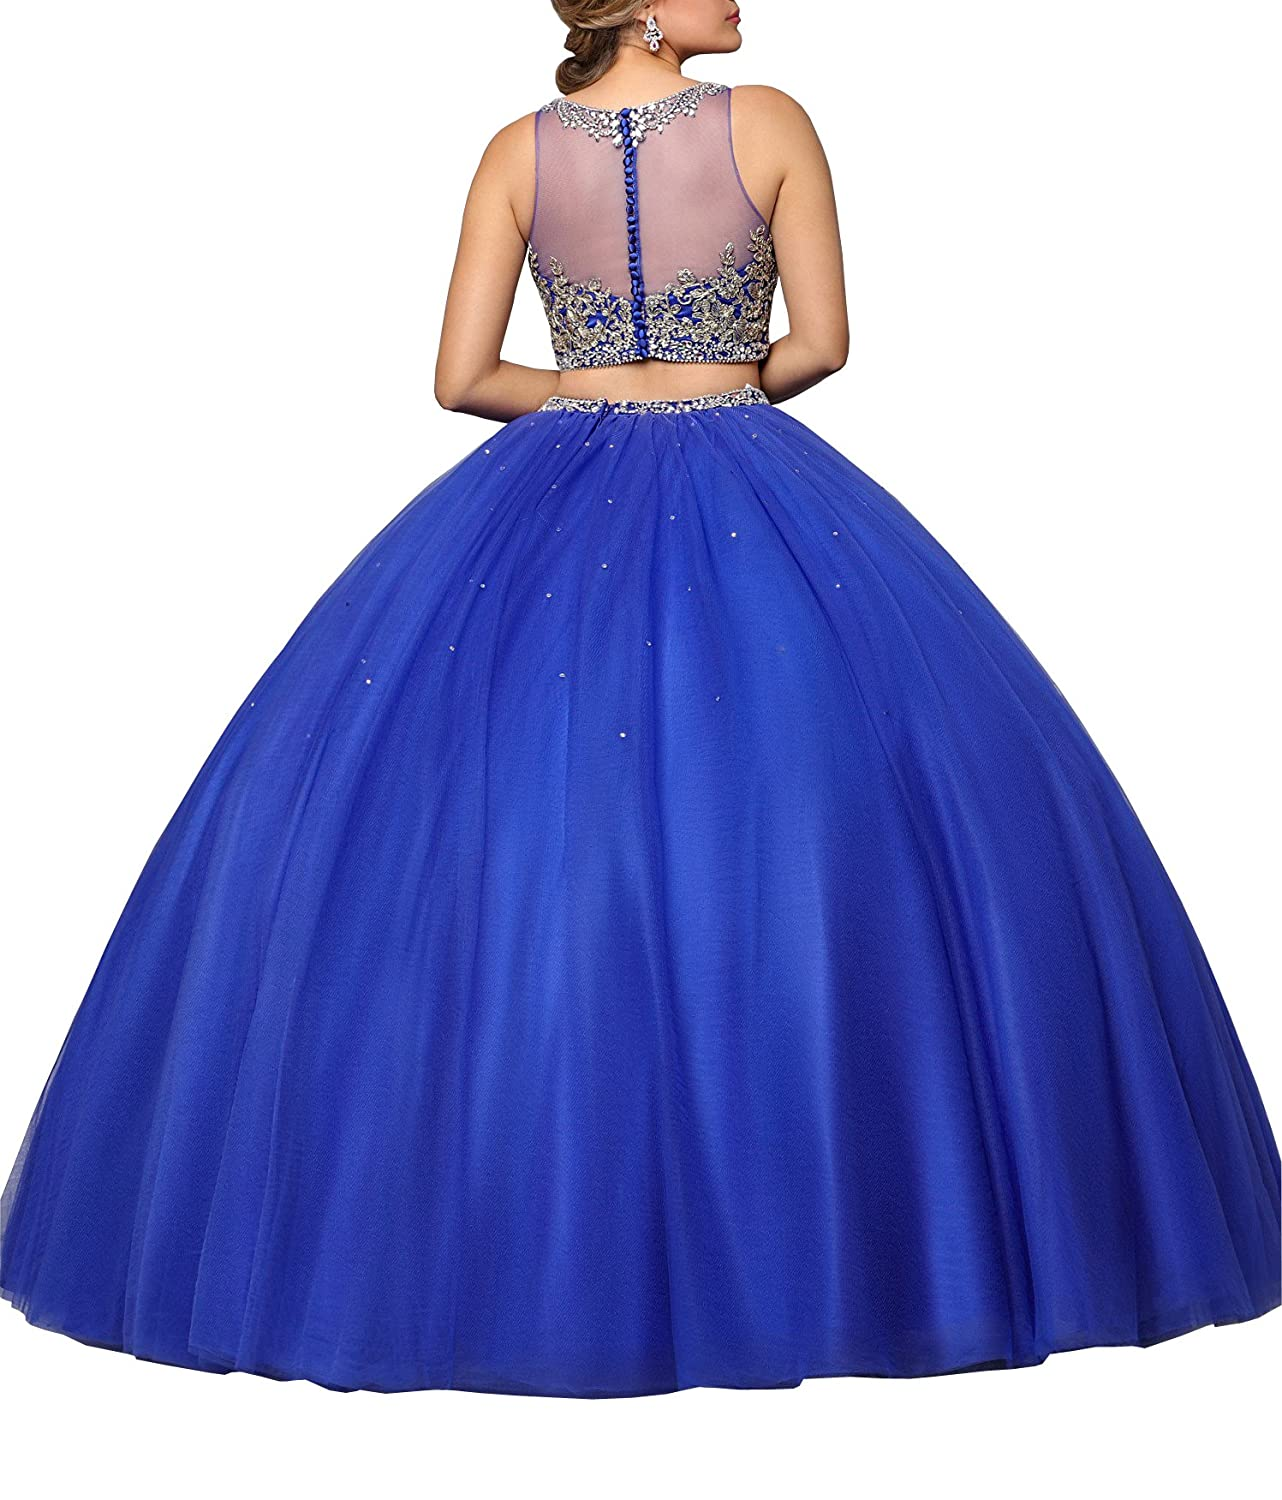 b9c31499f9f Fannydress Gold Embellished Prom Quinceanera Dresses 2 Piece 2019 Long Ball  Gowns Hollow Back Beaded Tulle at Amazon Women s Clothing store